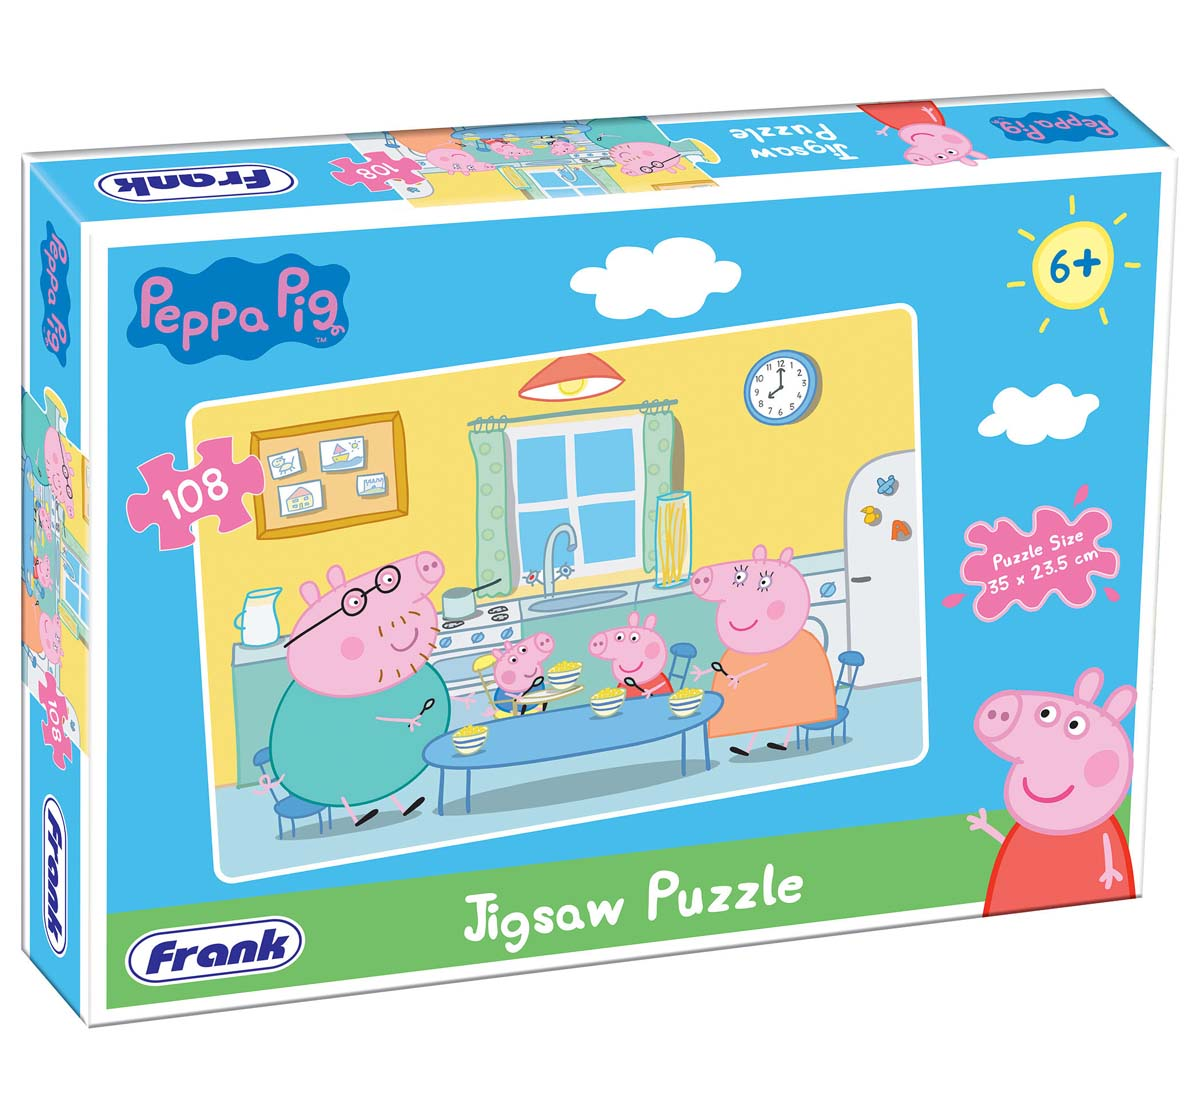 Frank | Frank Peppa Pig 108 Pcs Puzzle Puzzles for Kids Age 6Y+